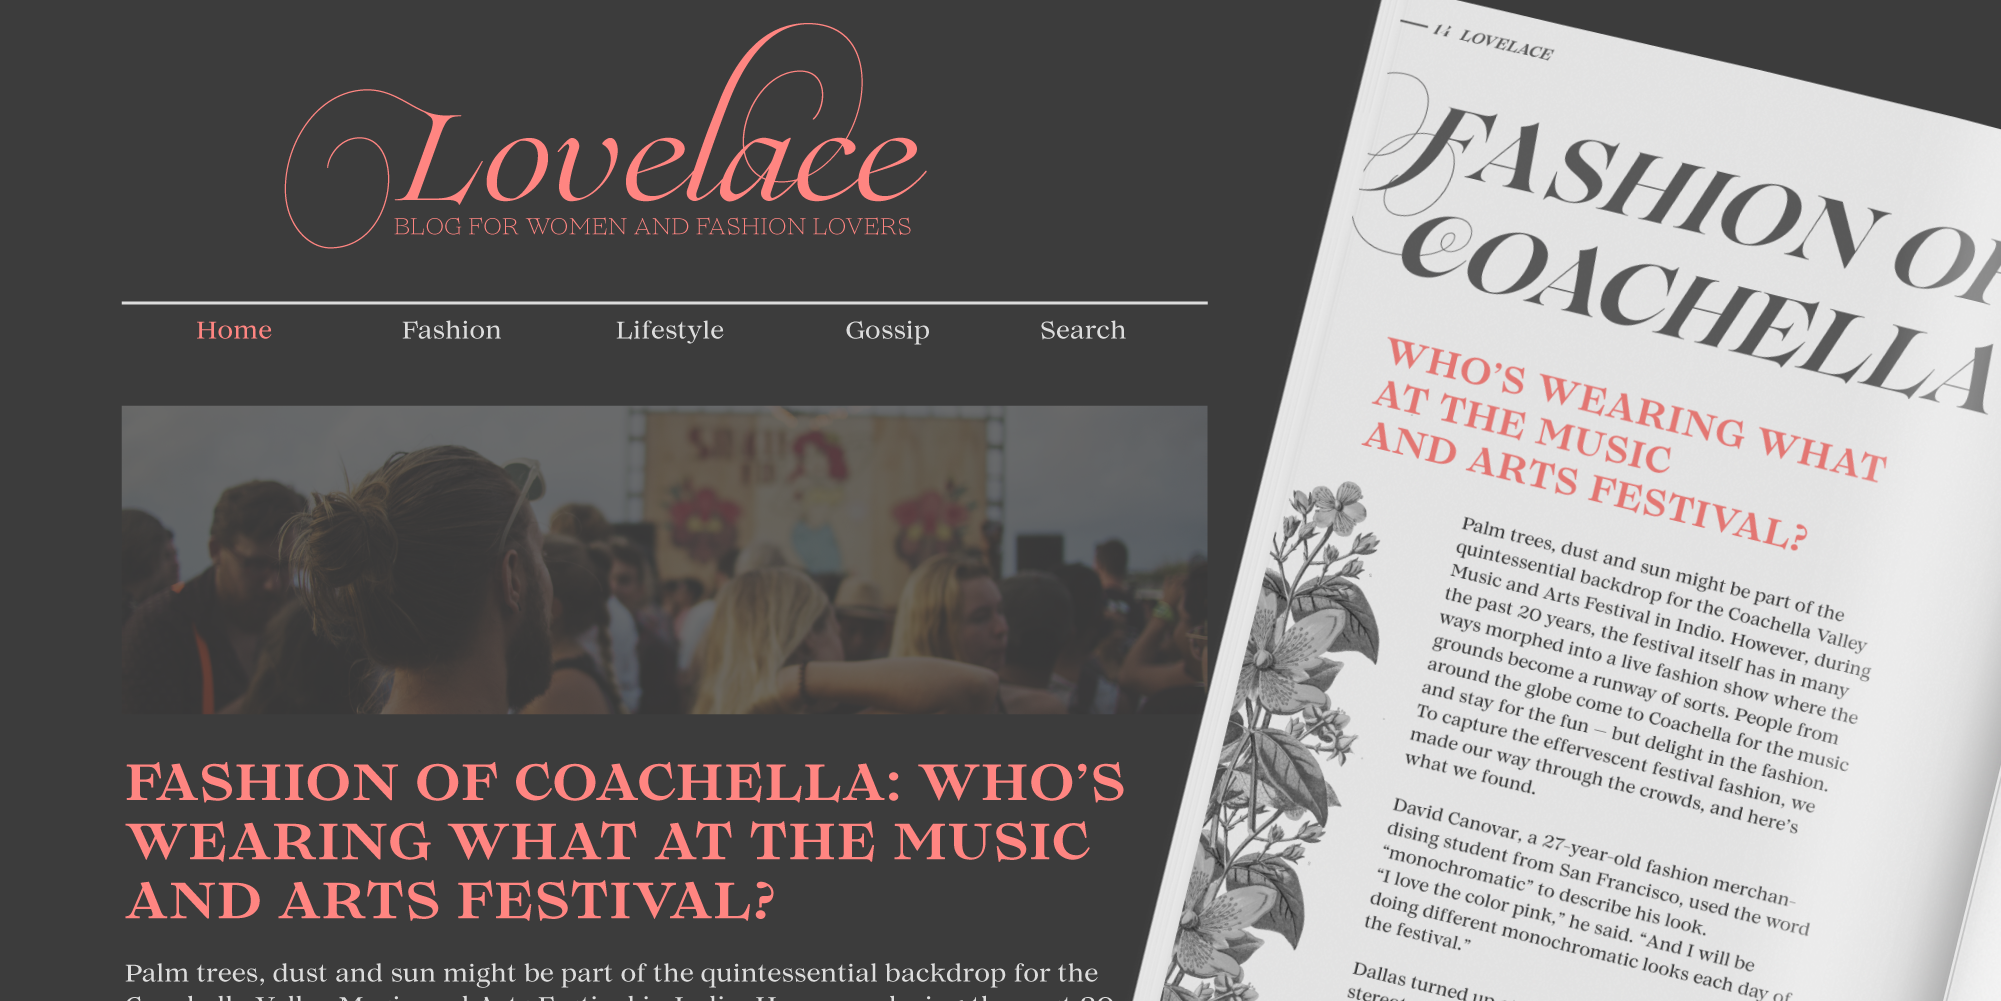 Lovelace website